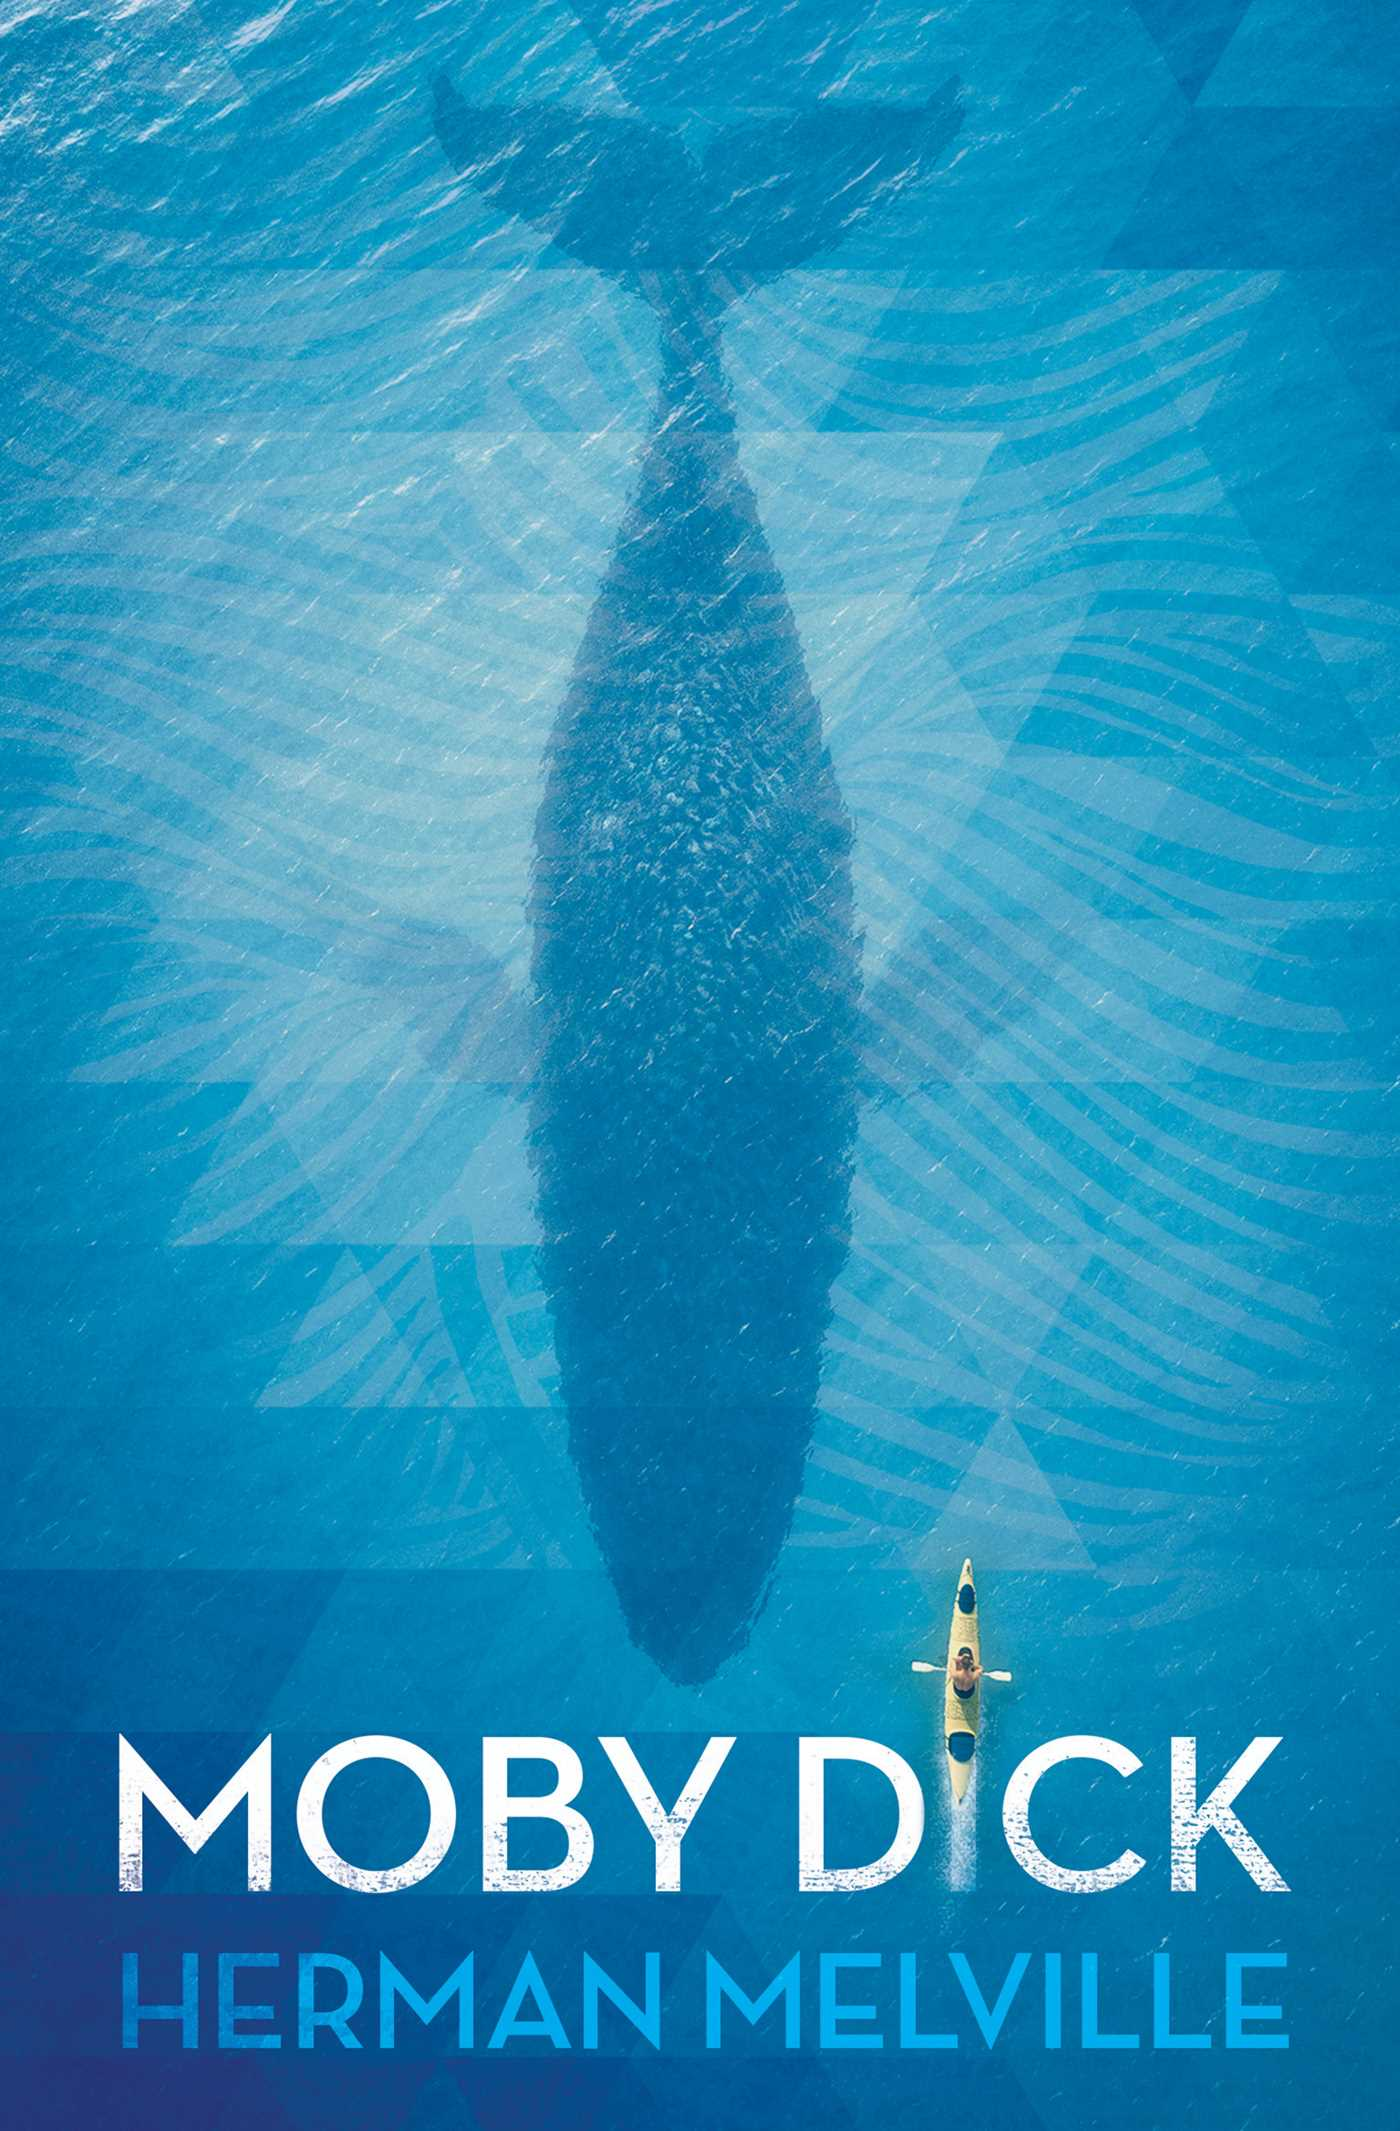 Moby dick 9781471137235 hr